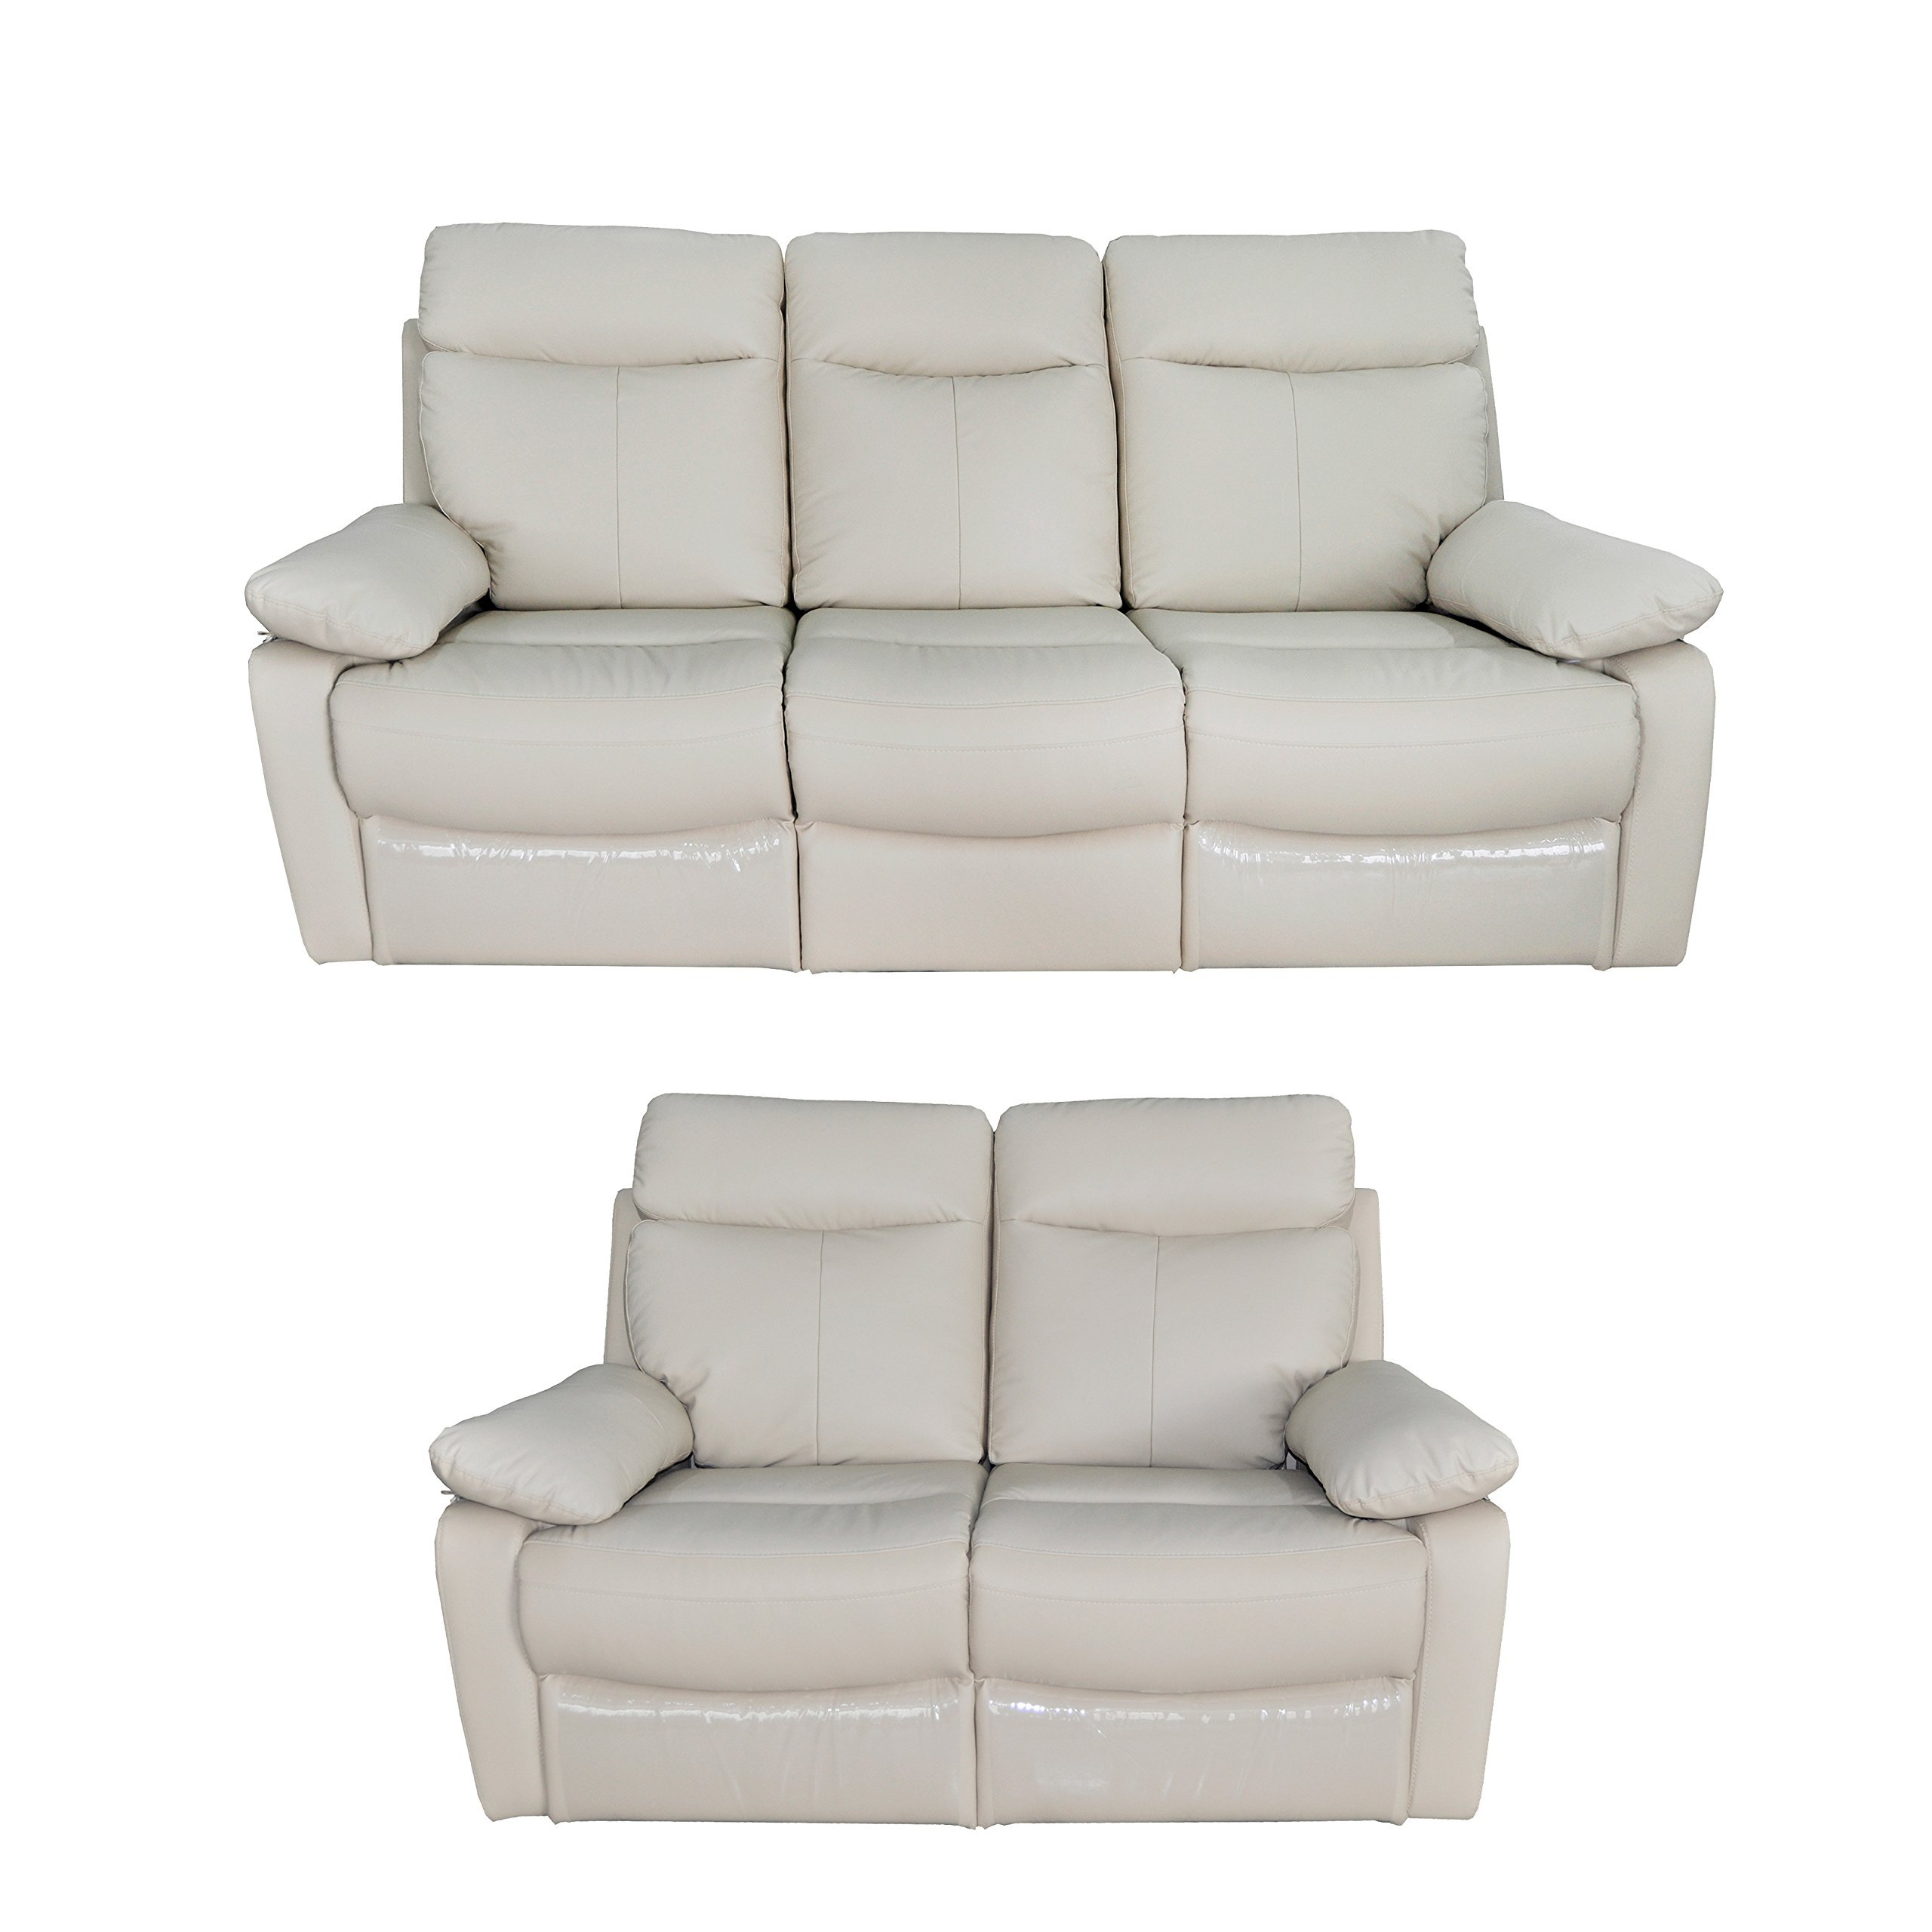 Cheap Living Room Recliners, find Living Room Recliners deals on ...